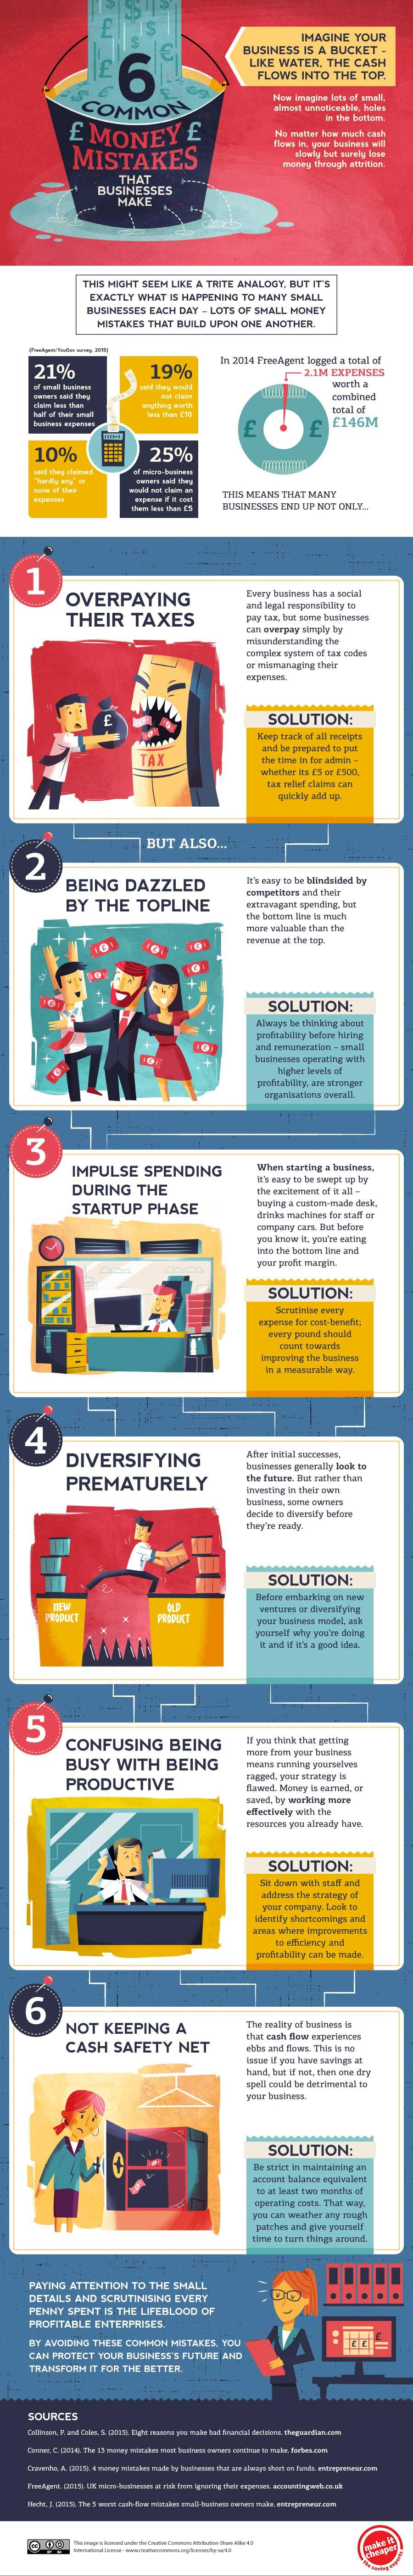 money mistakes (Infographic)